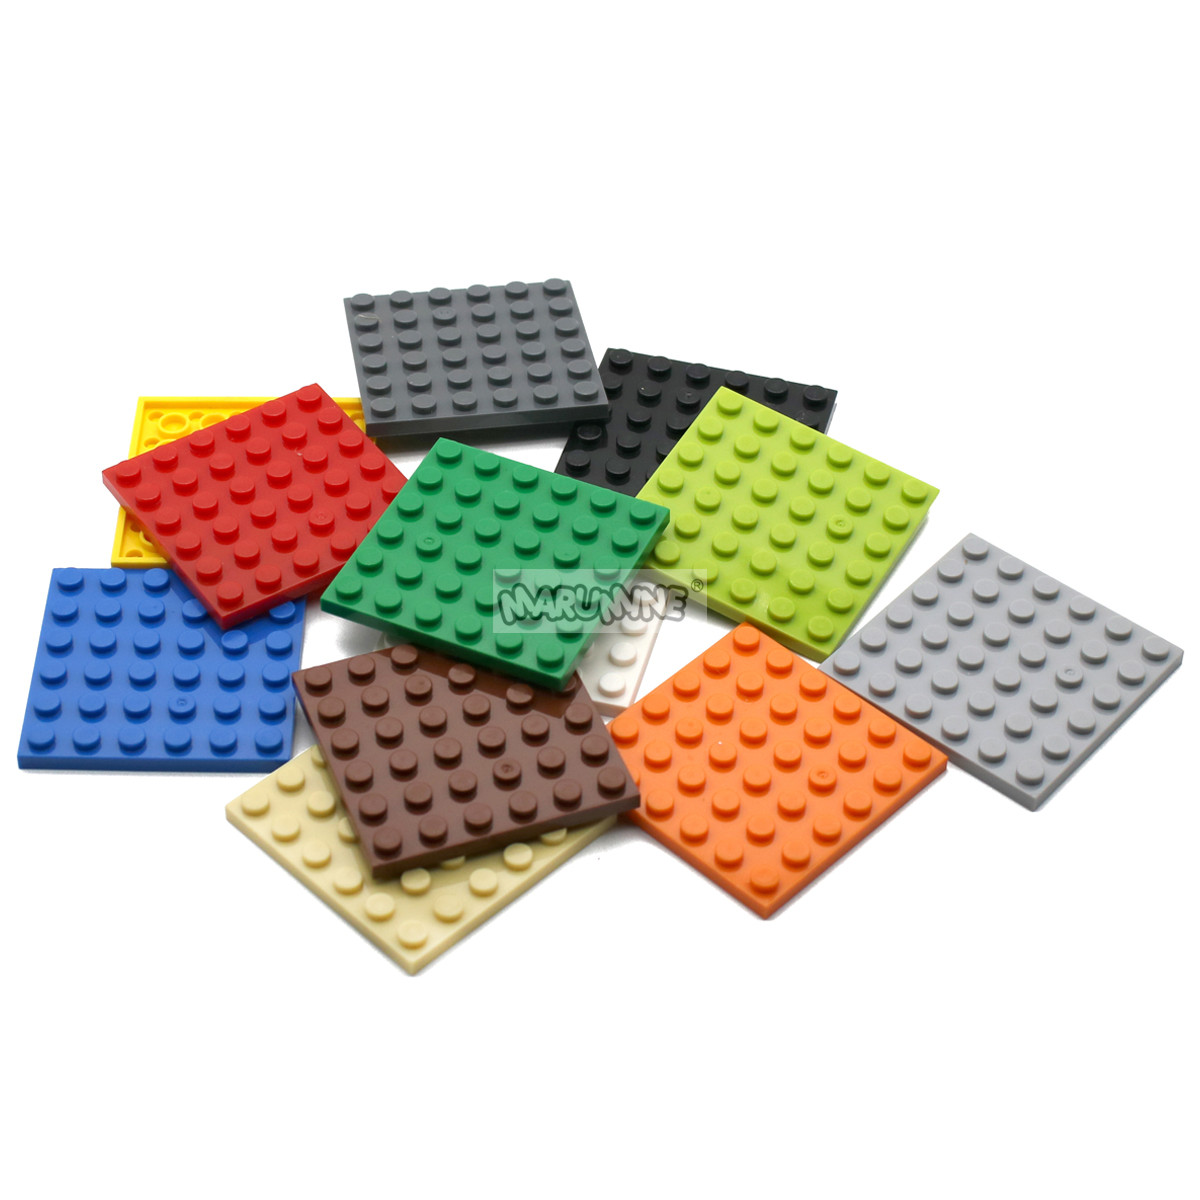 MARUMINE 6 x 6 plate 36 Dots Particles Building Blocks Plate 3958 Bricks Set Boys Girls DIY Classic Educational Children Toys